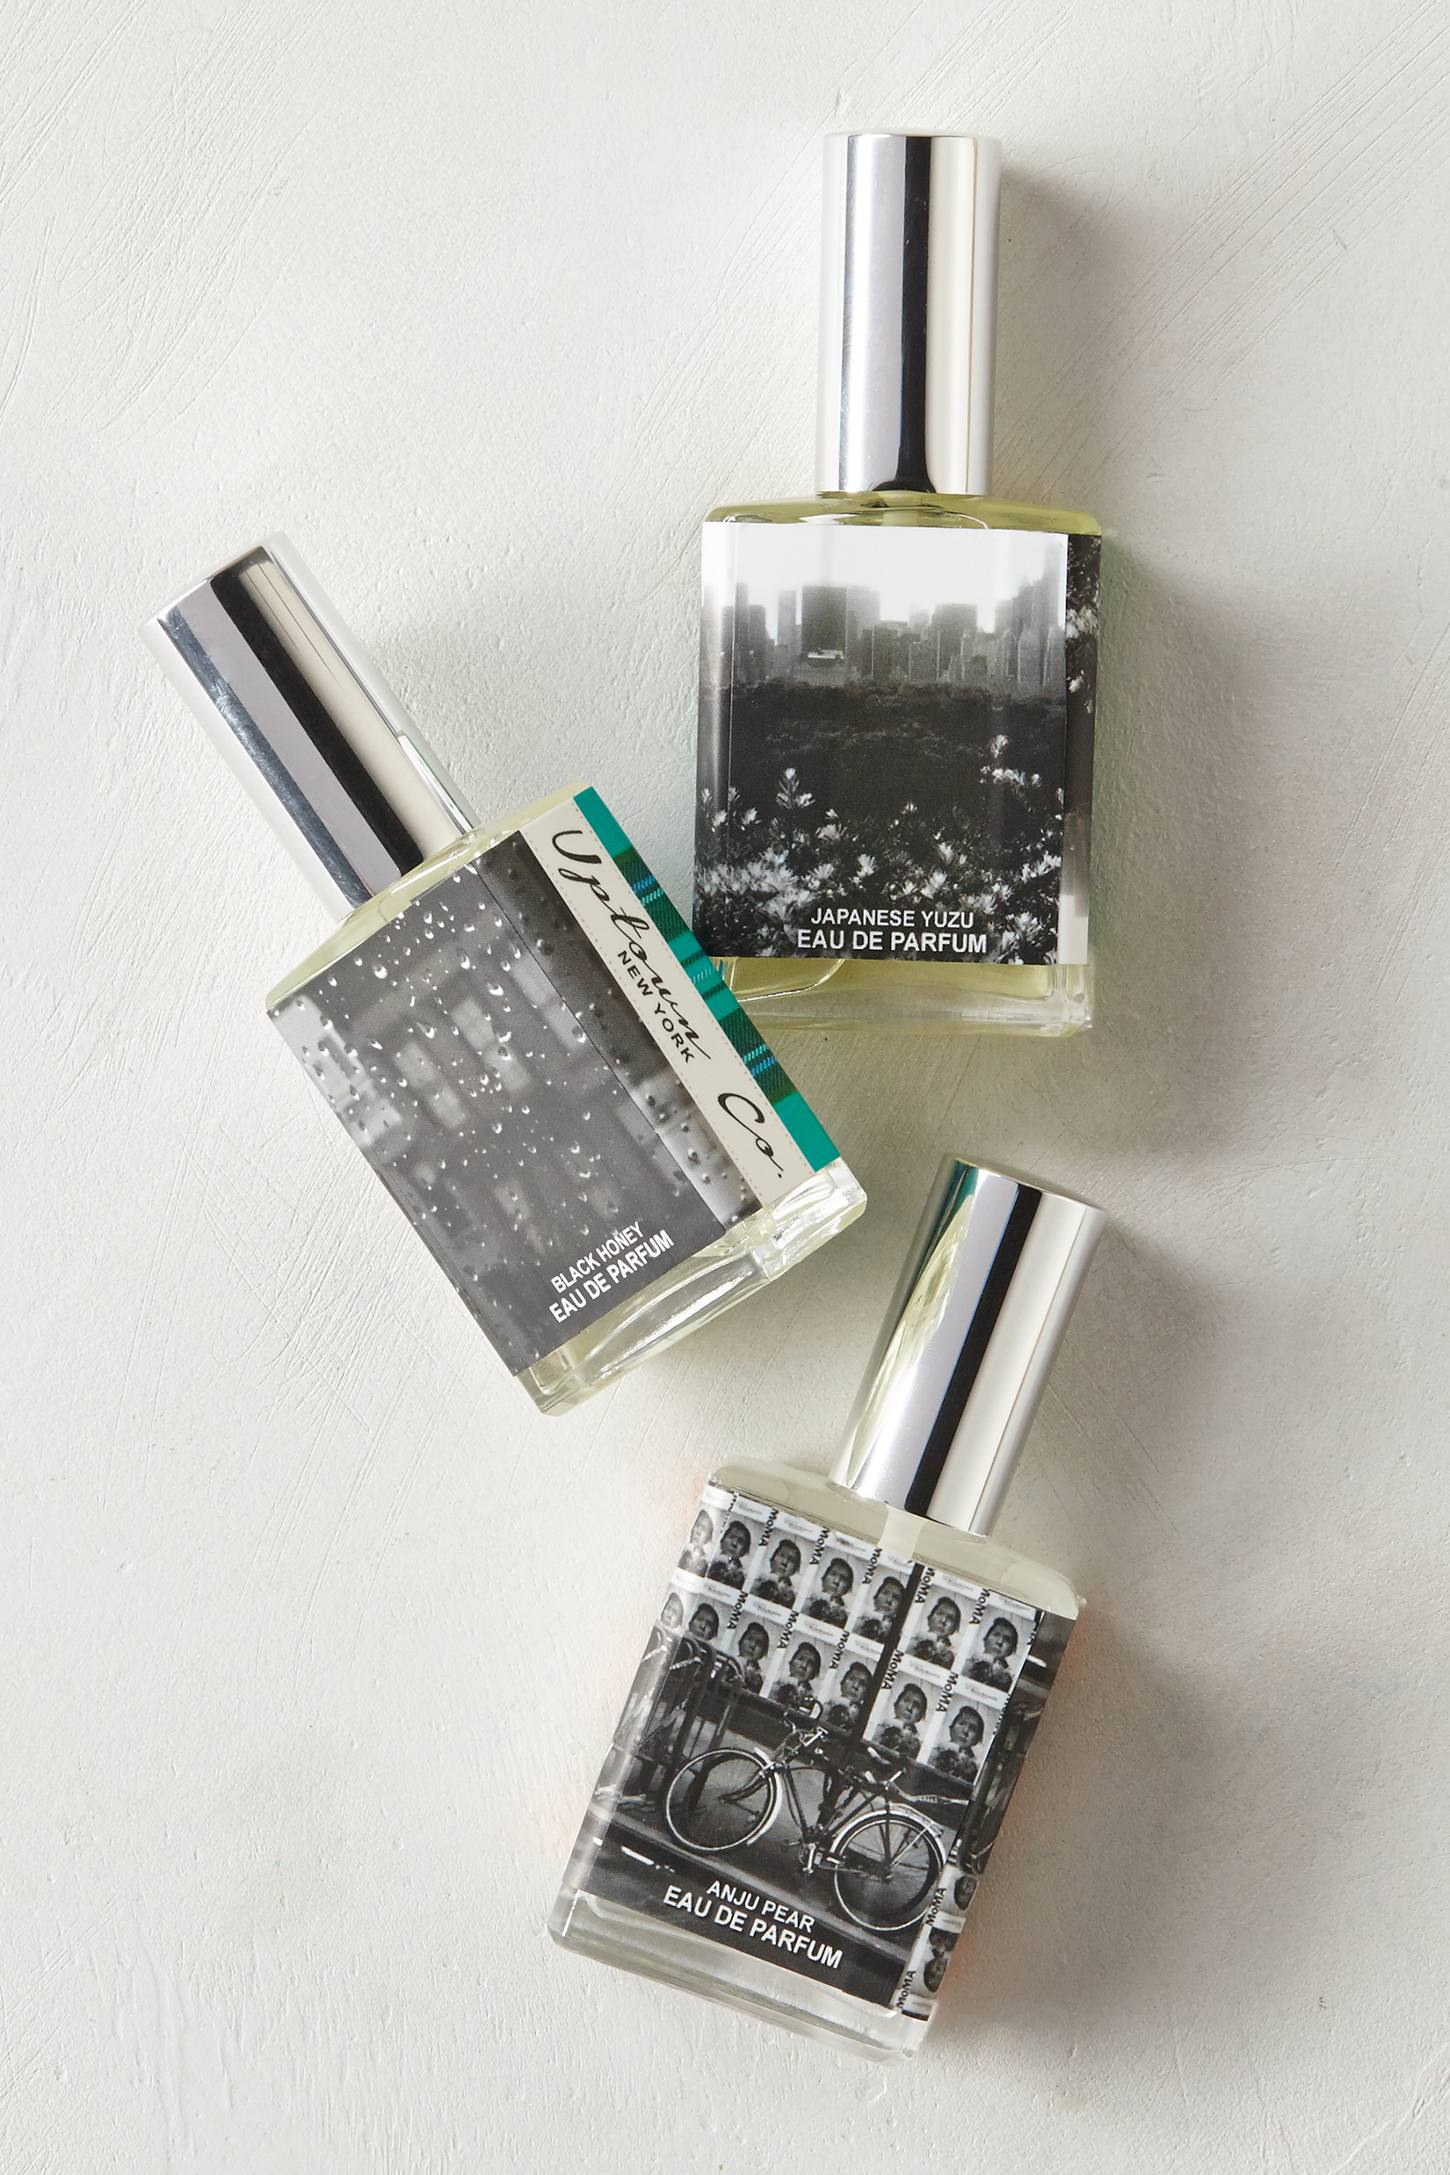 Uptown Soap Co. Eau De Parfum